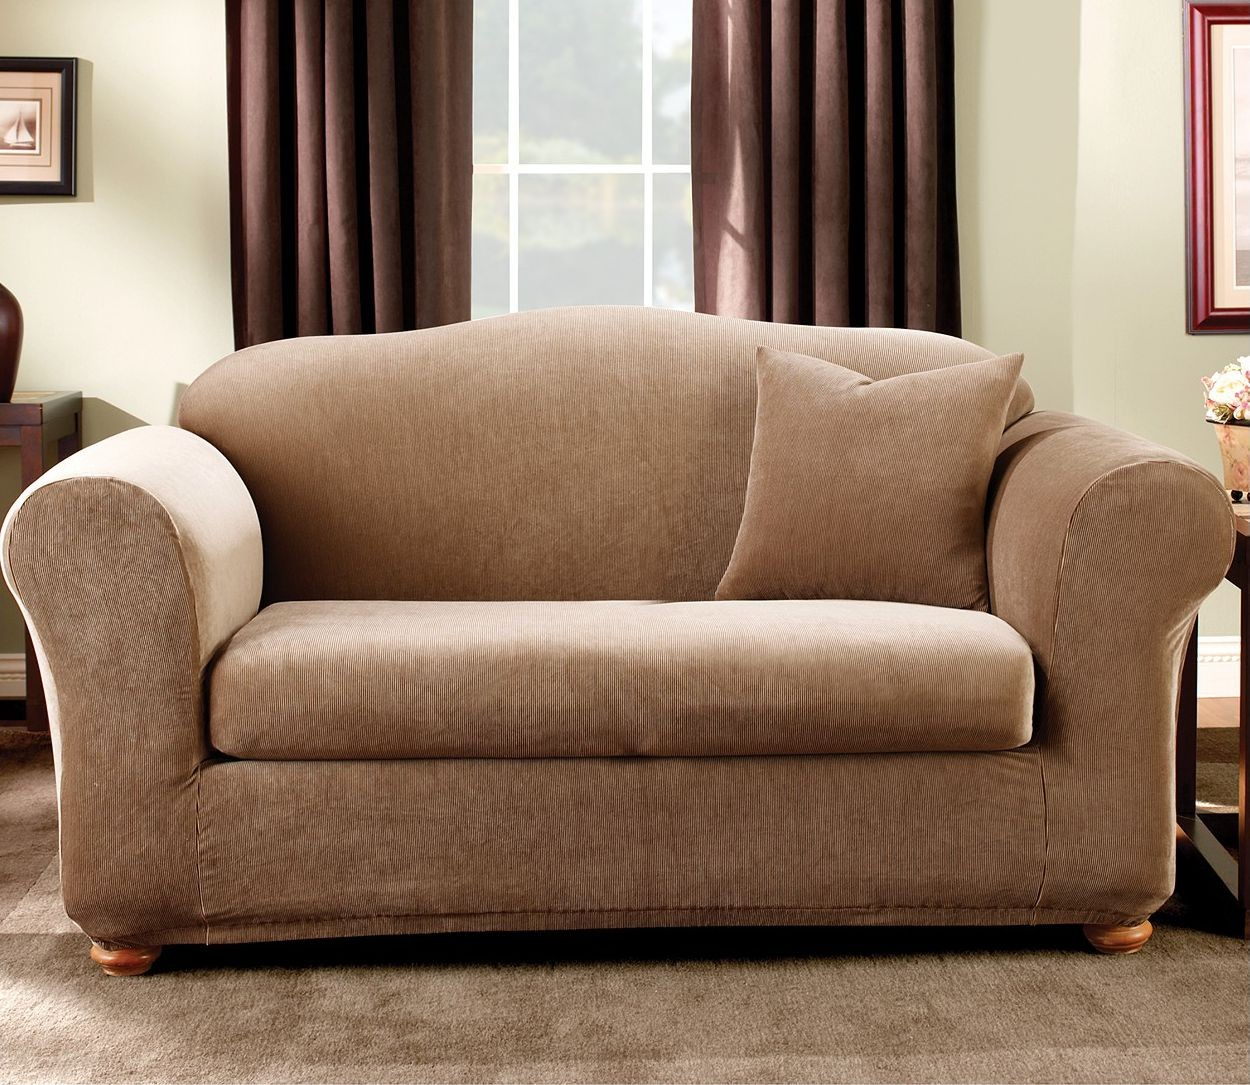 awesome sofa with tan surefit cover on gray rug which matched with white wall with brown curtain for living room decor ideas